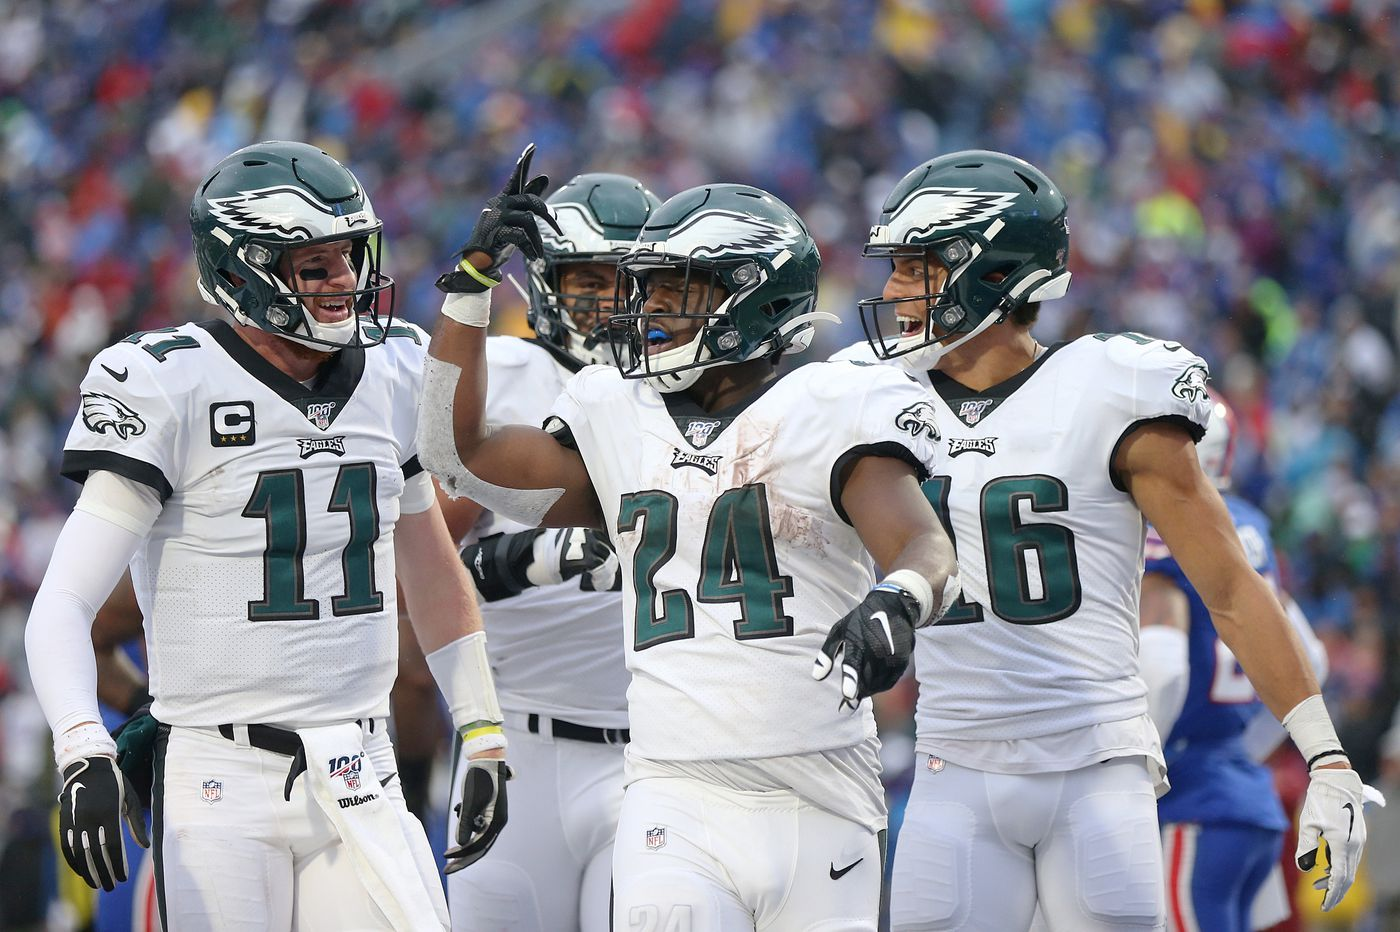 NFL Week 9 predictions: Vegas Vic has some early props on Eagles, taking Cowboys as best bet